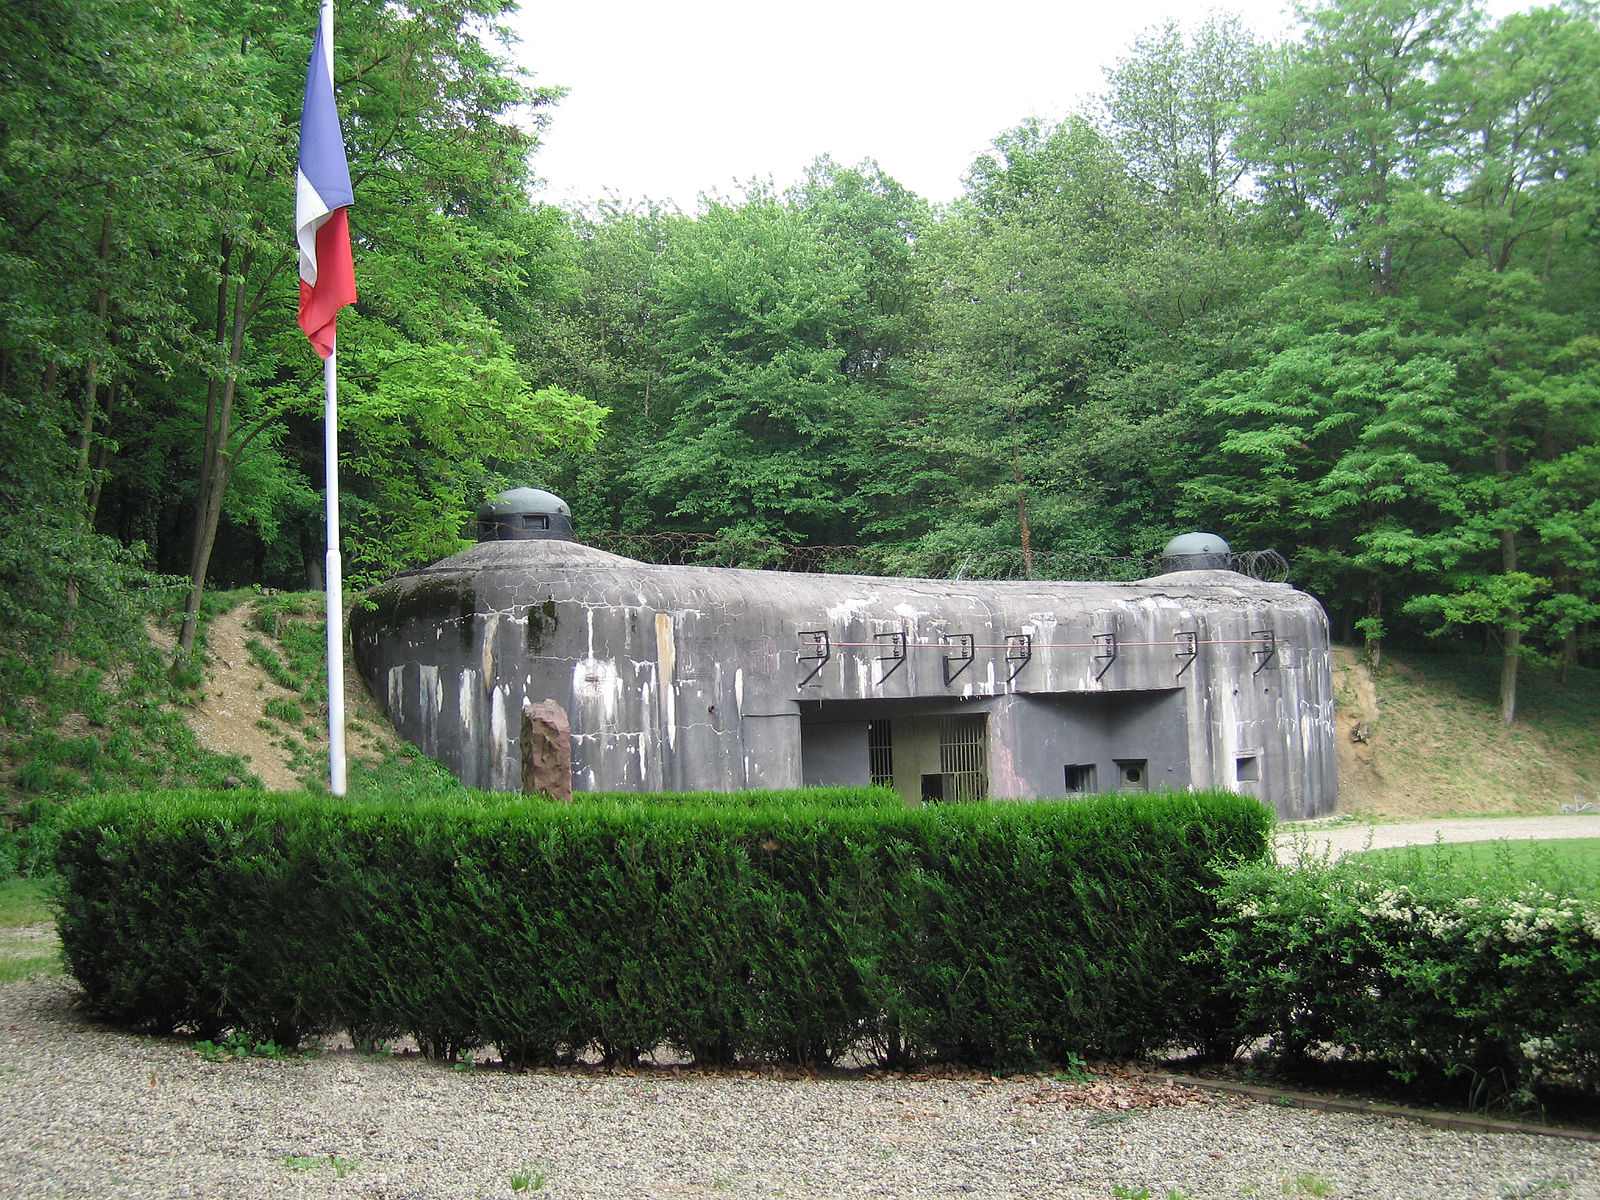 Pictures of the maginot line